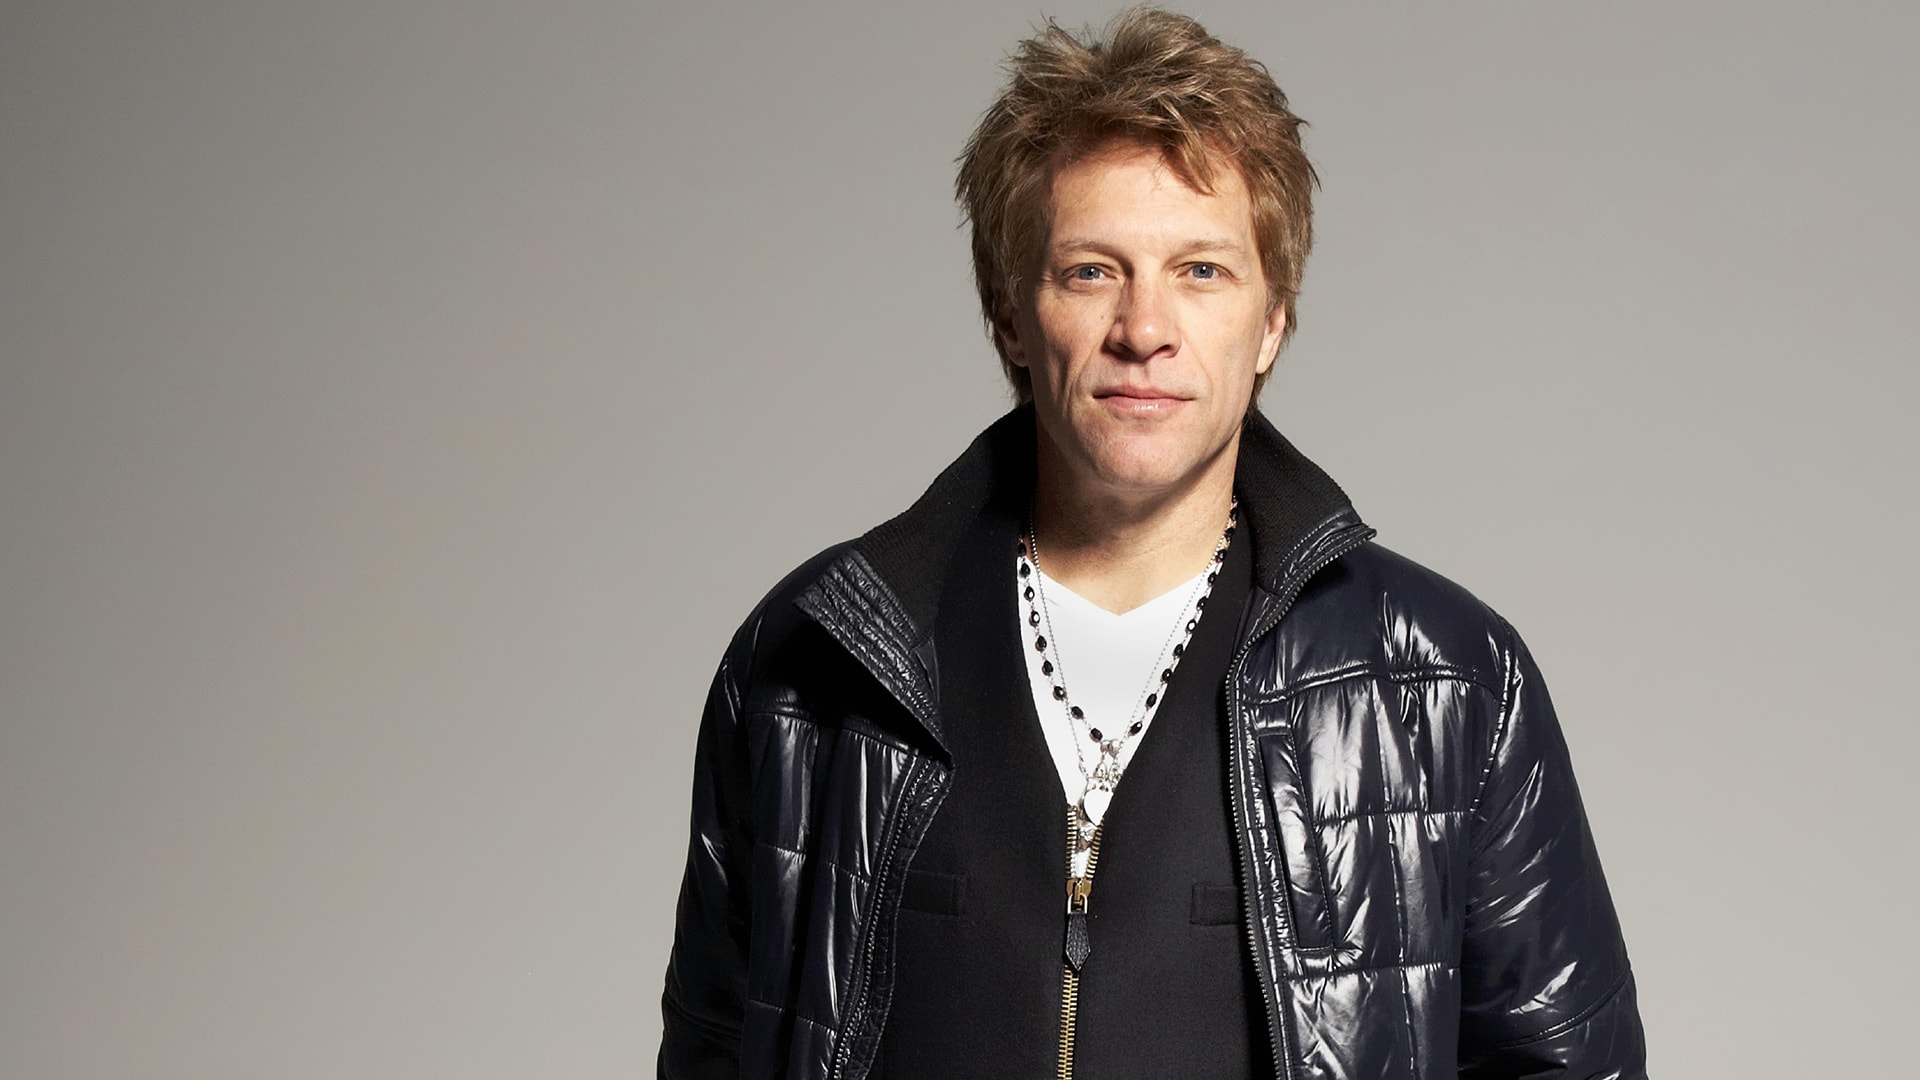 Jon Bon Jovi Phone number, Email Id, Fanmail, Instagram, Tiktok, and Contact Details